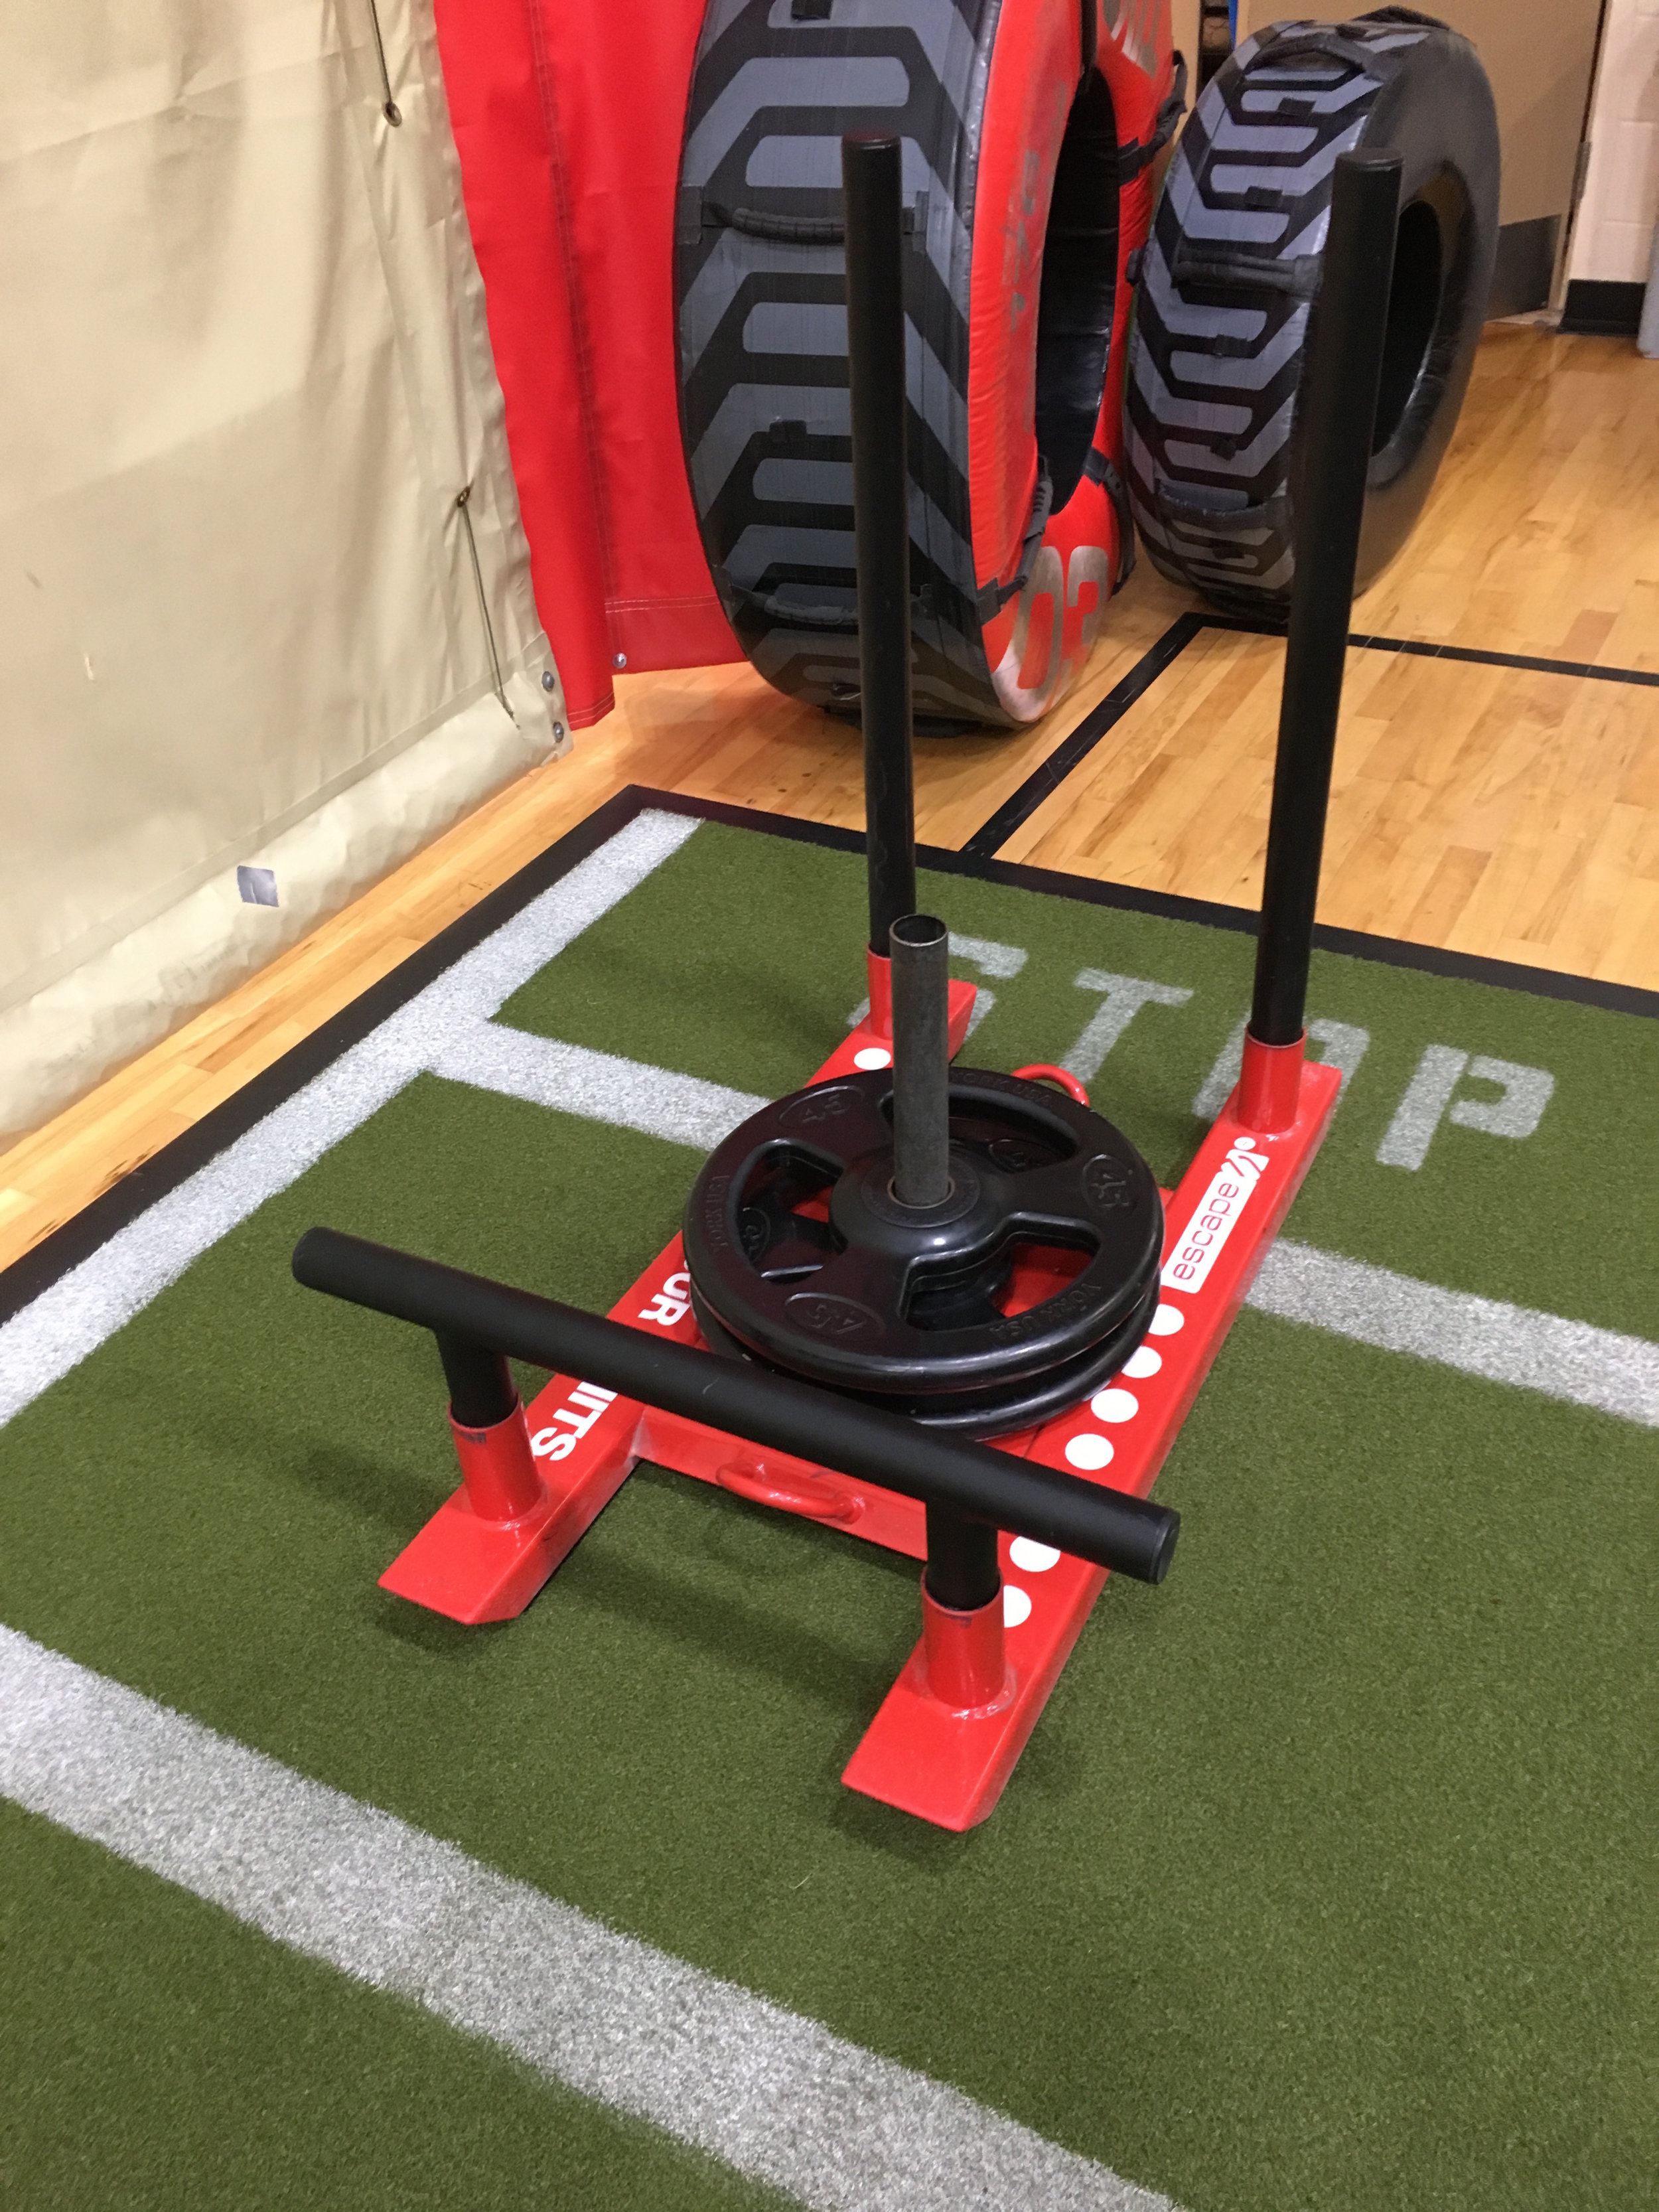 - Monday: Went to the gym with my nephew. Focused mostly on the back side of the body.Started with 15 minutes on the Stairmaster. Then did some single leg deadlifts, TRX hamstring curls, TRX bridges, TRX triceps, TRX pikes, and a 5 minute finisher playing on the prowler sled.